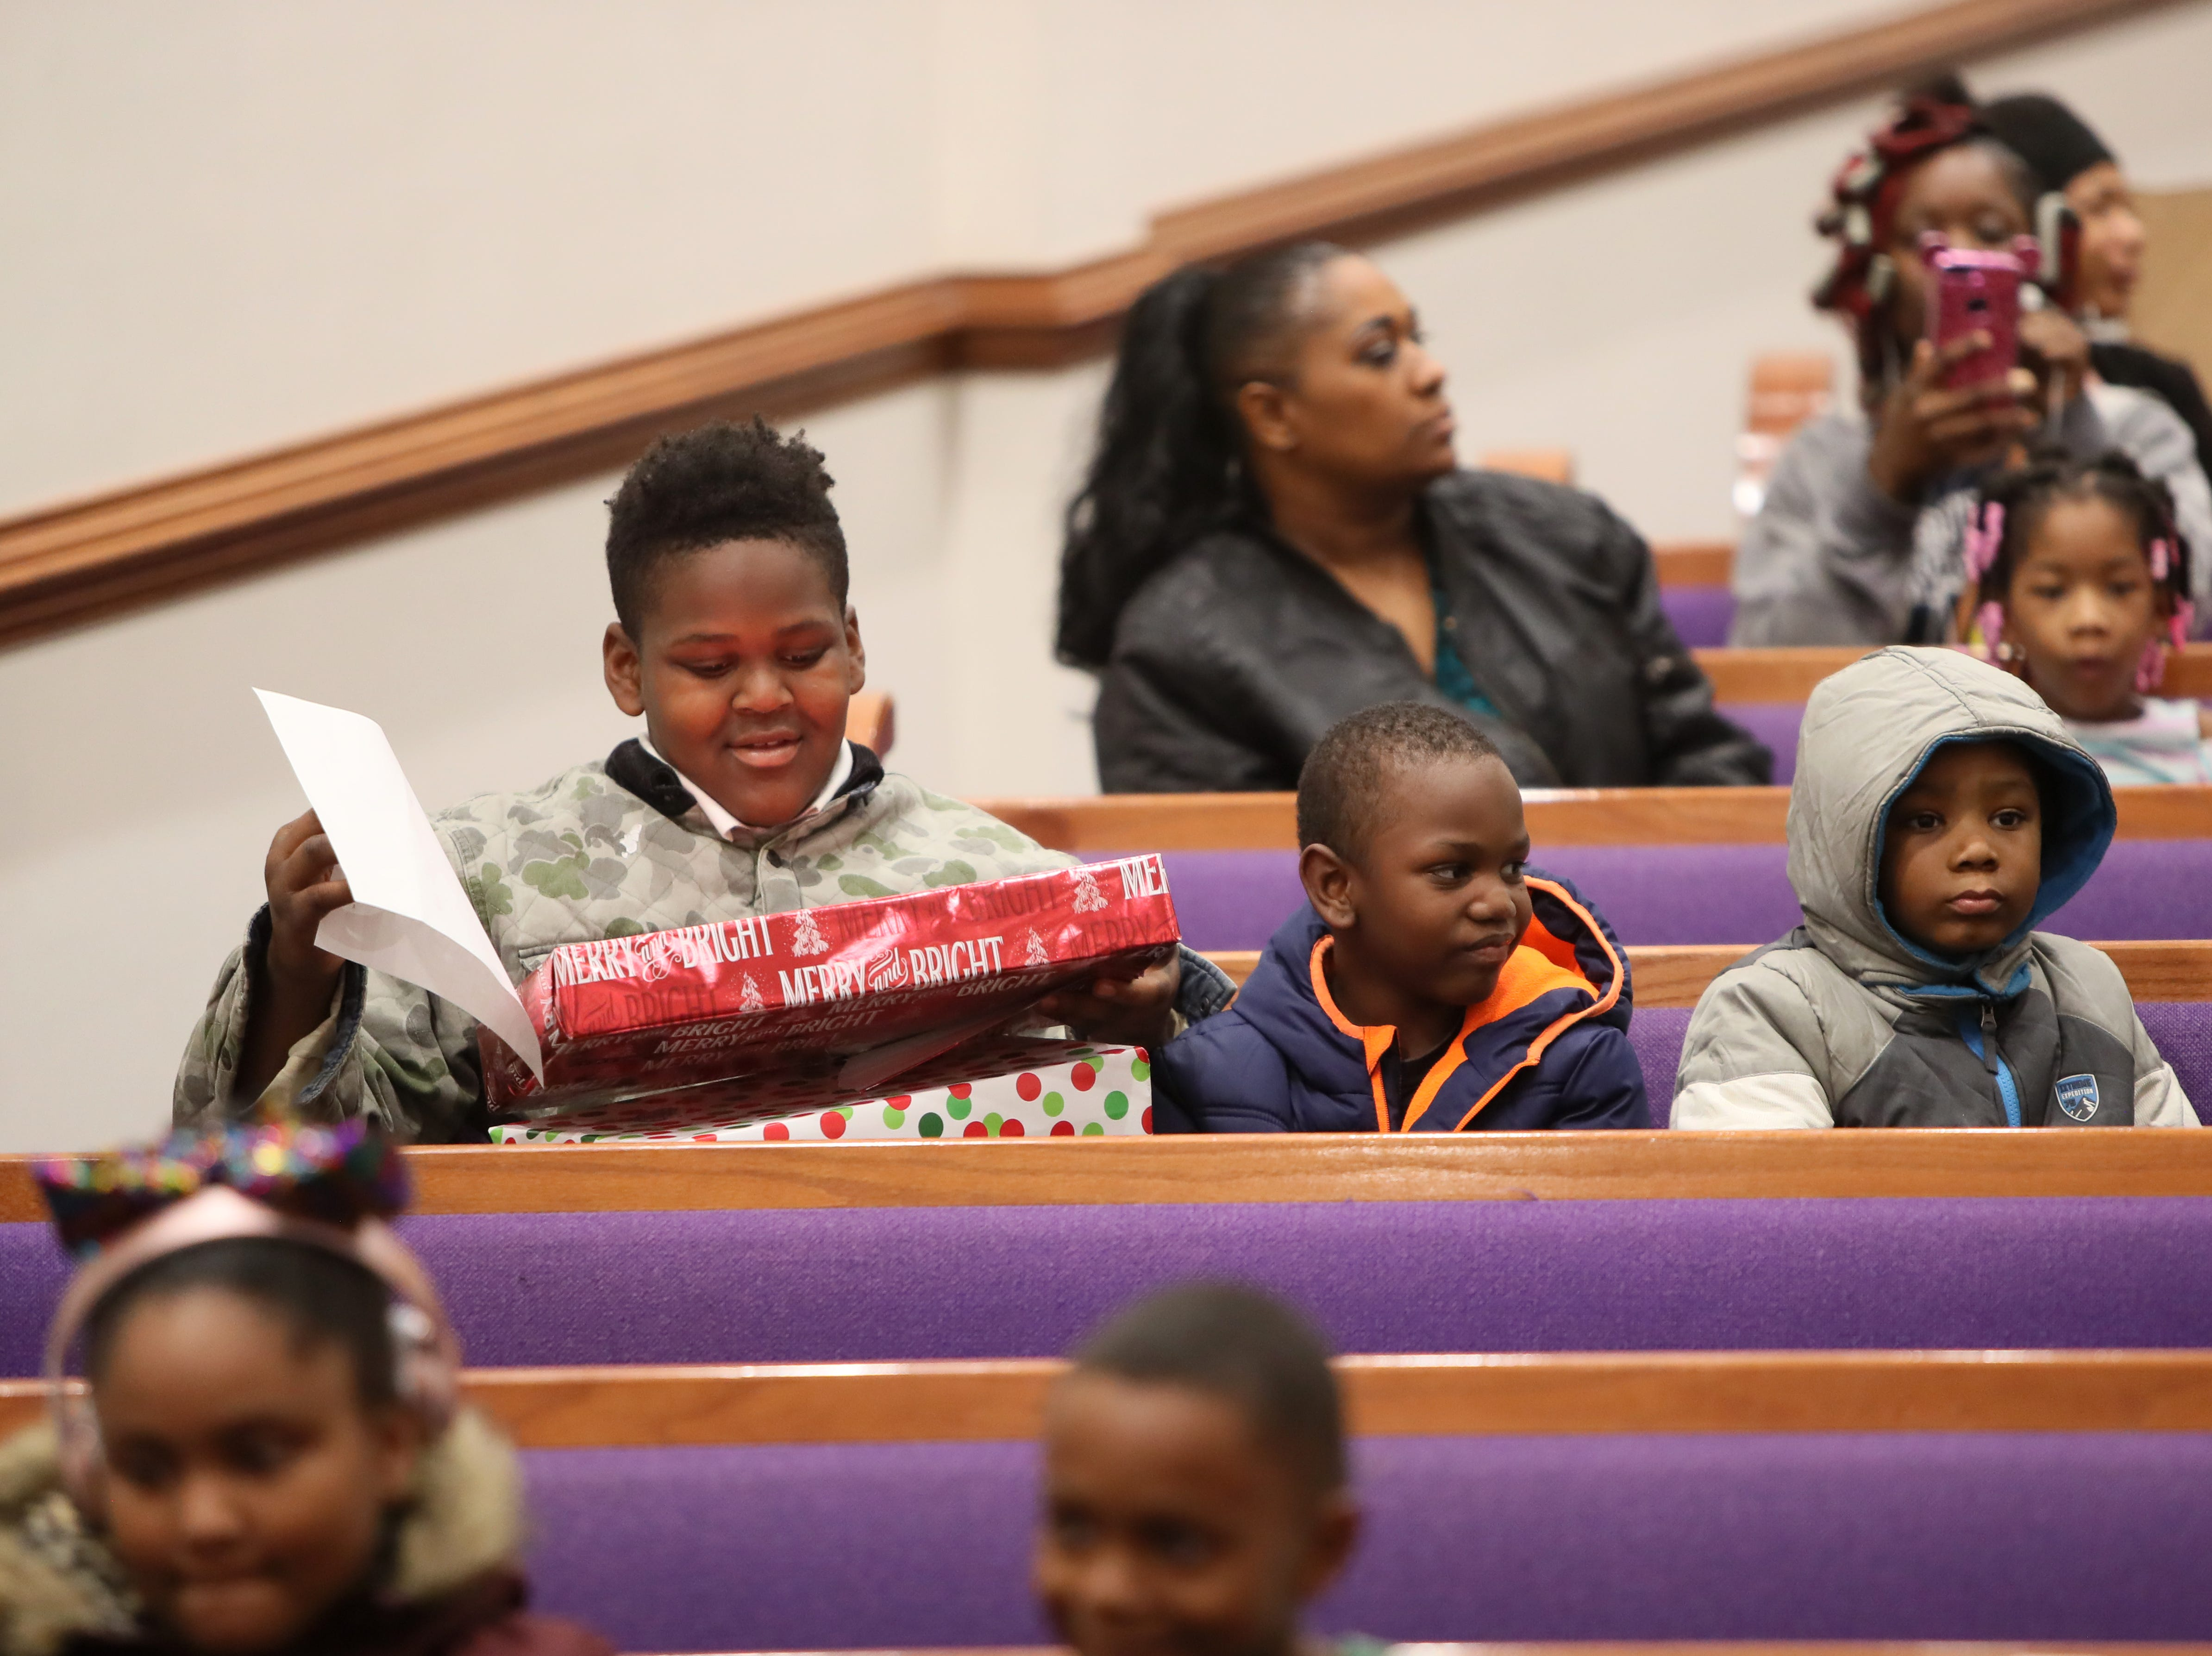 Children receive Christmas presents as the MPD's Community Outreach Program brings holiday cheer through gifts and food to dozens of families at Grace Missionary Baptist Church on Thursday, Dec. 20, 2018.